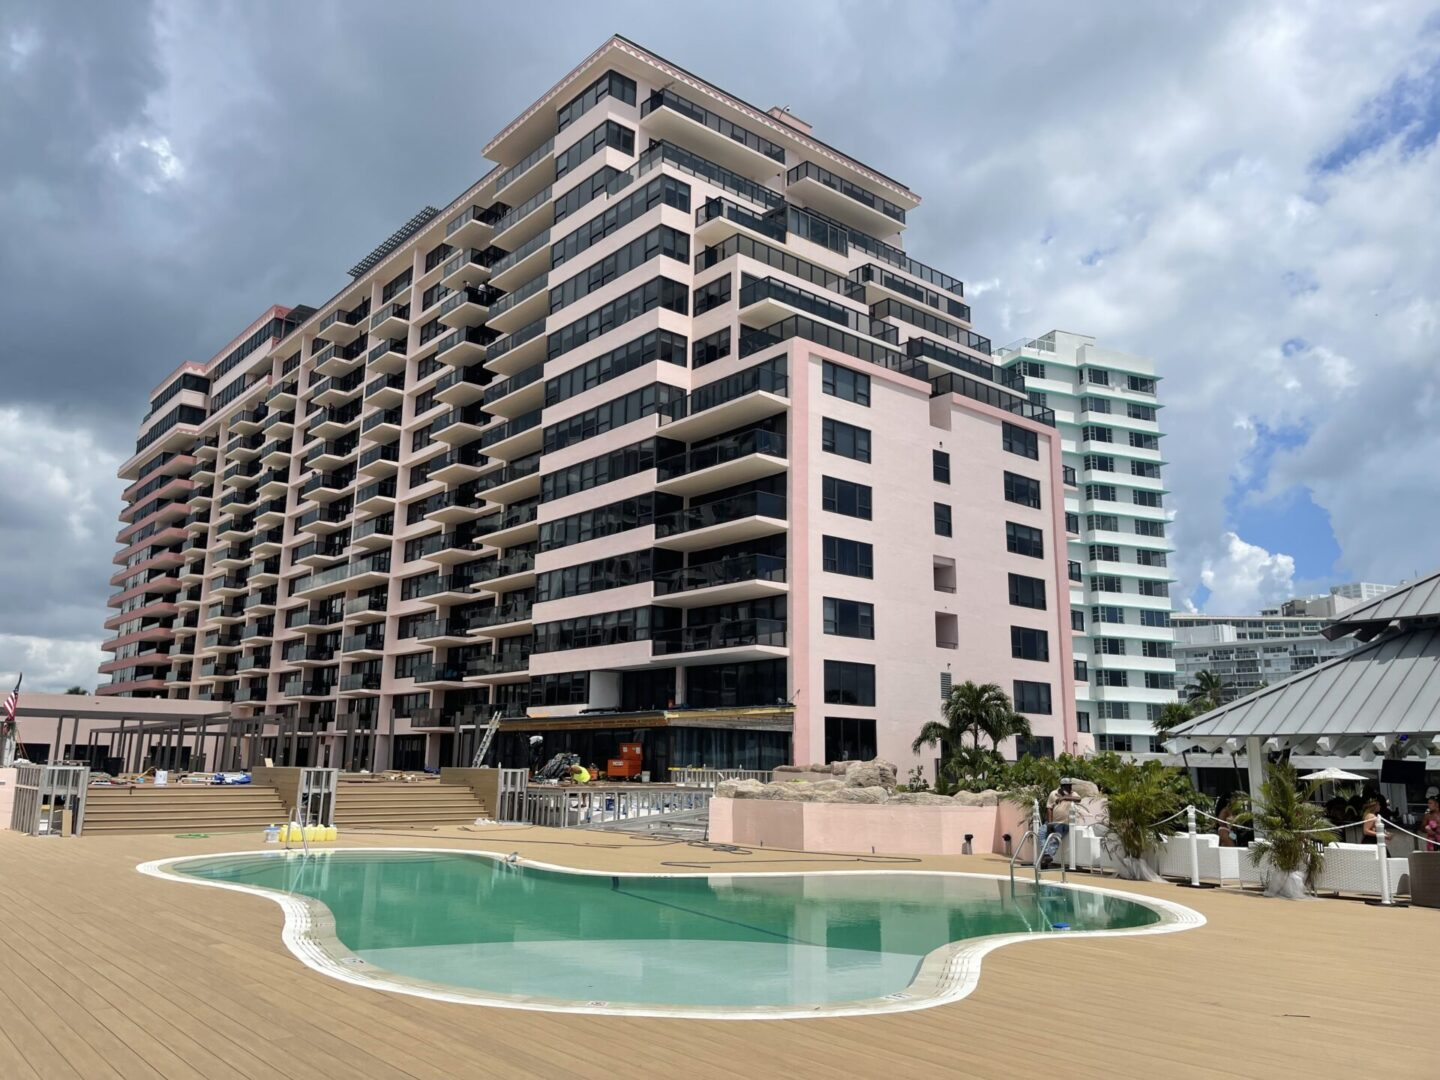 A curvy pool on wooden floors with a tall, beautiful building in the background